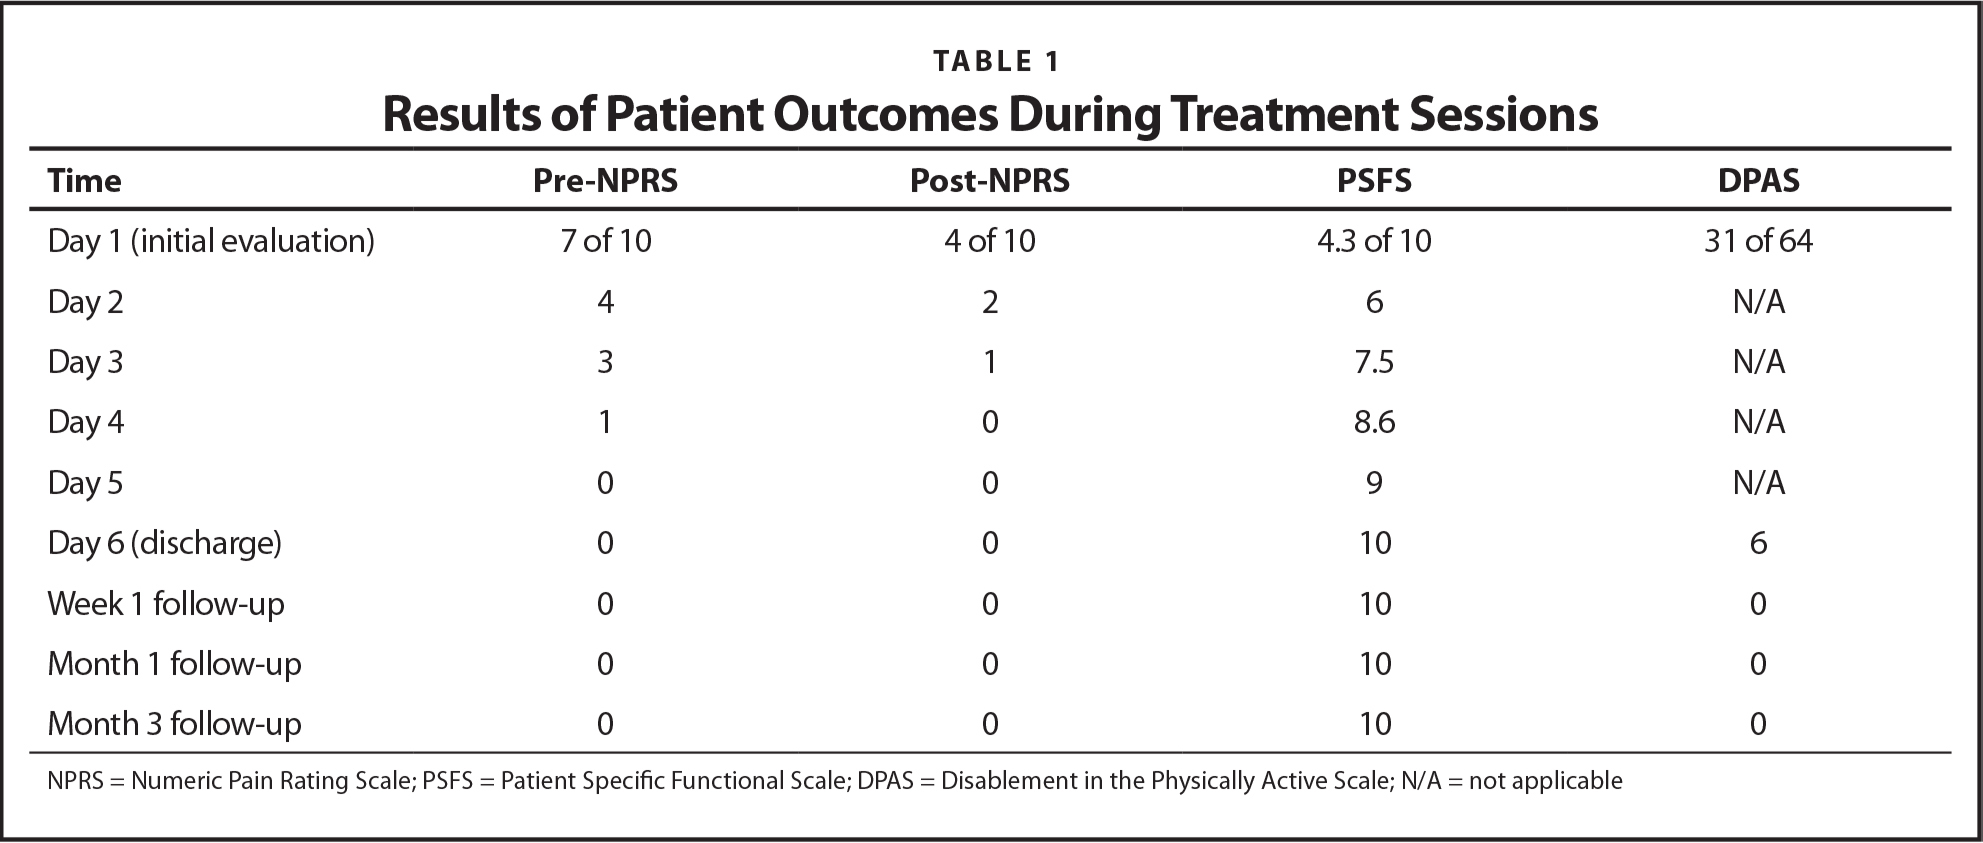 Results of Patient Outcomes During Treatment Sessions